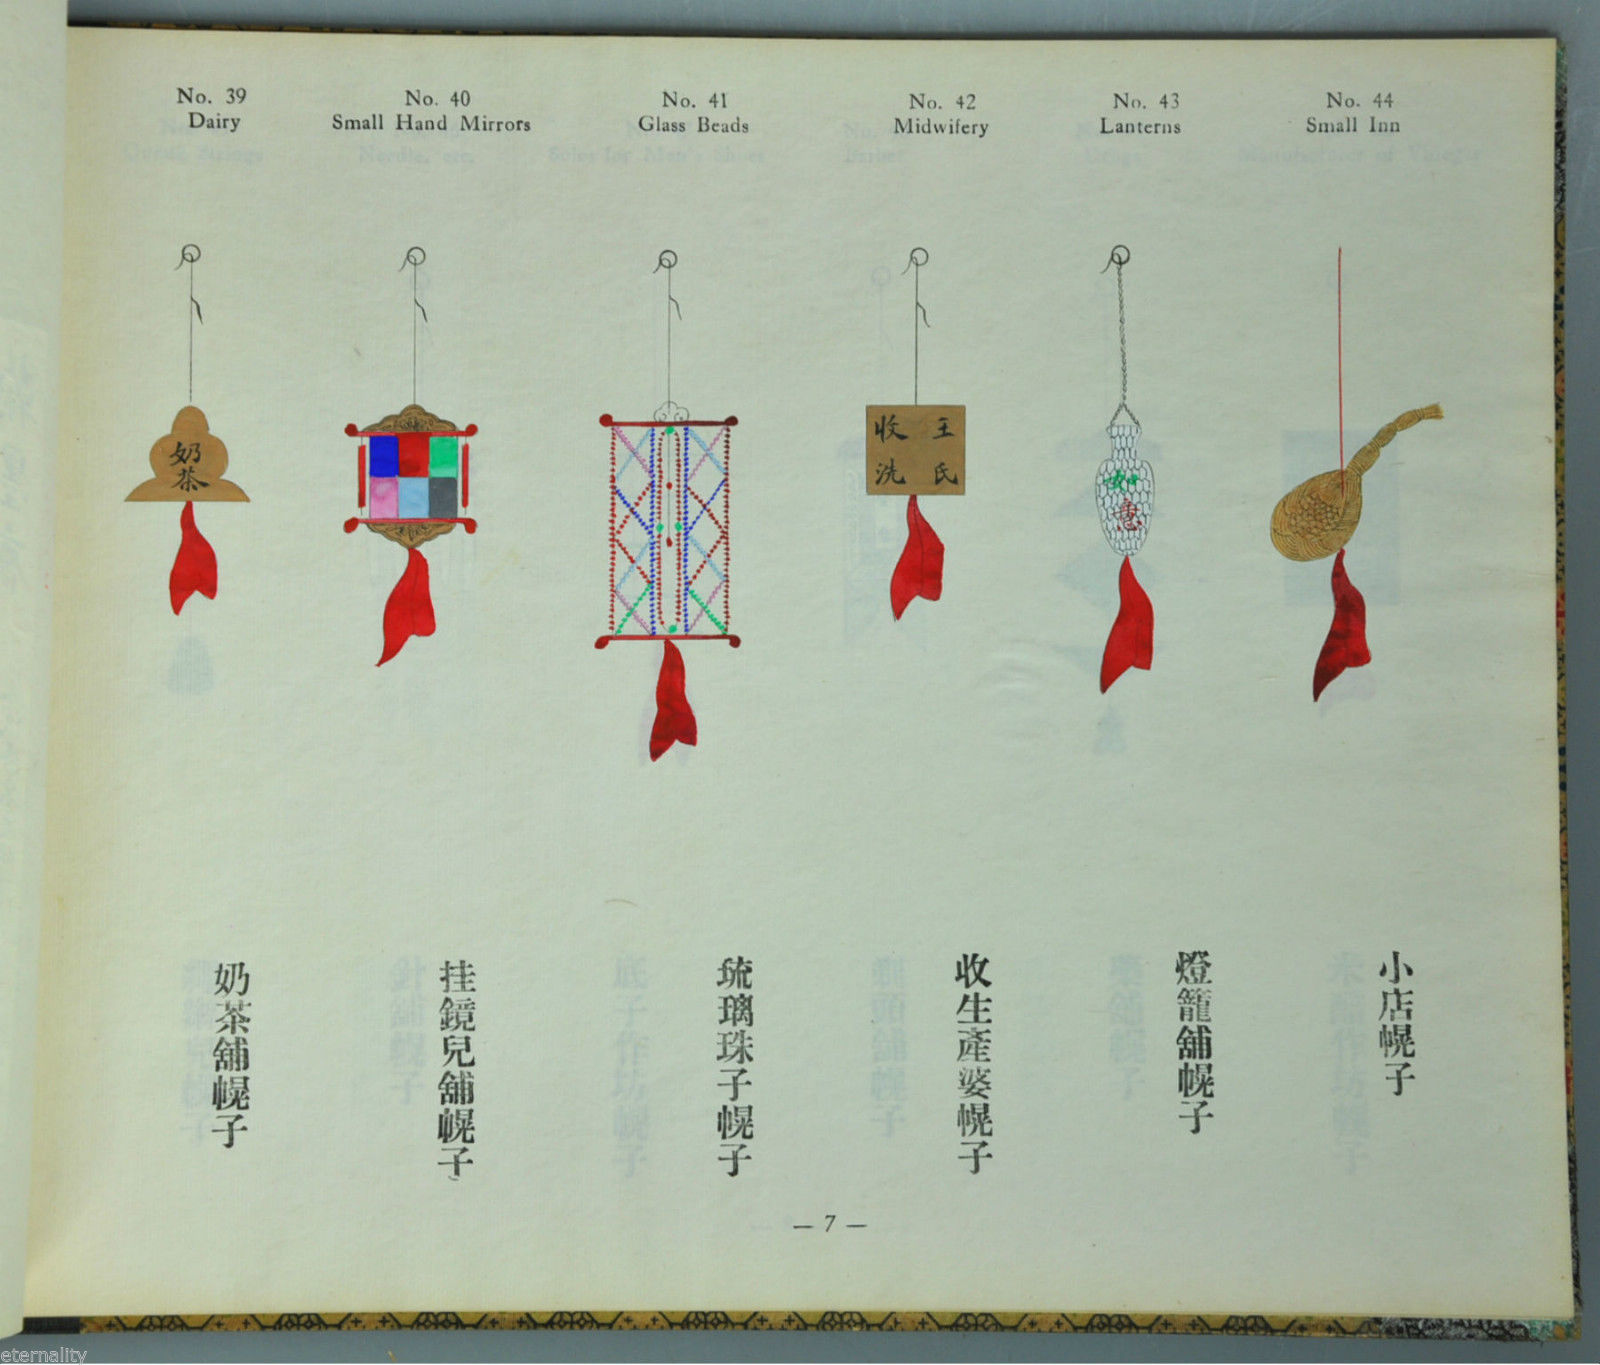 Shop_signs_of_old_peking_book_page_showing_glass_bead_shop_nov_2017.jpg (218.4 KB)